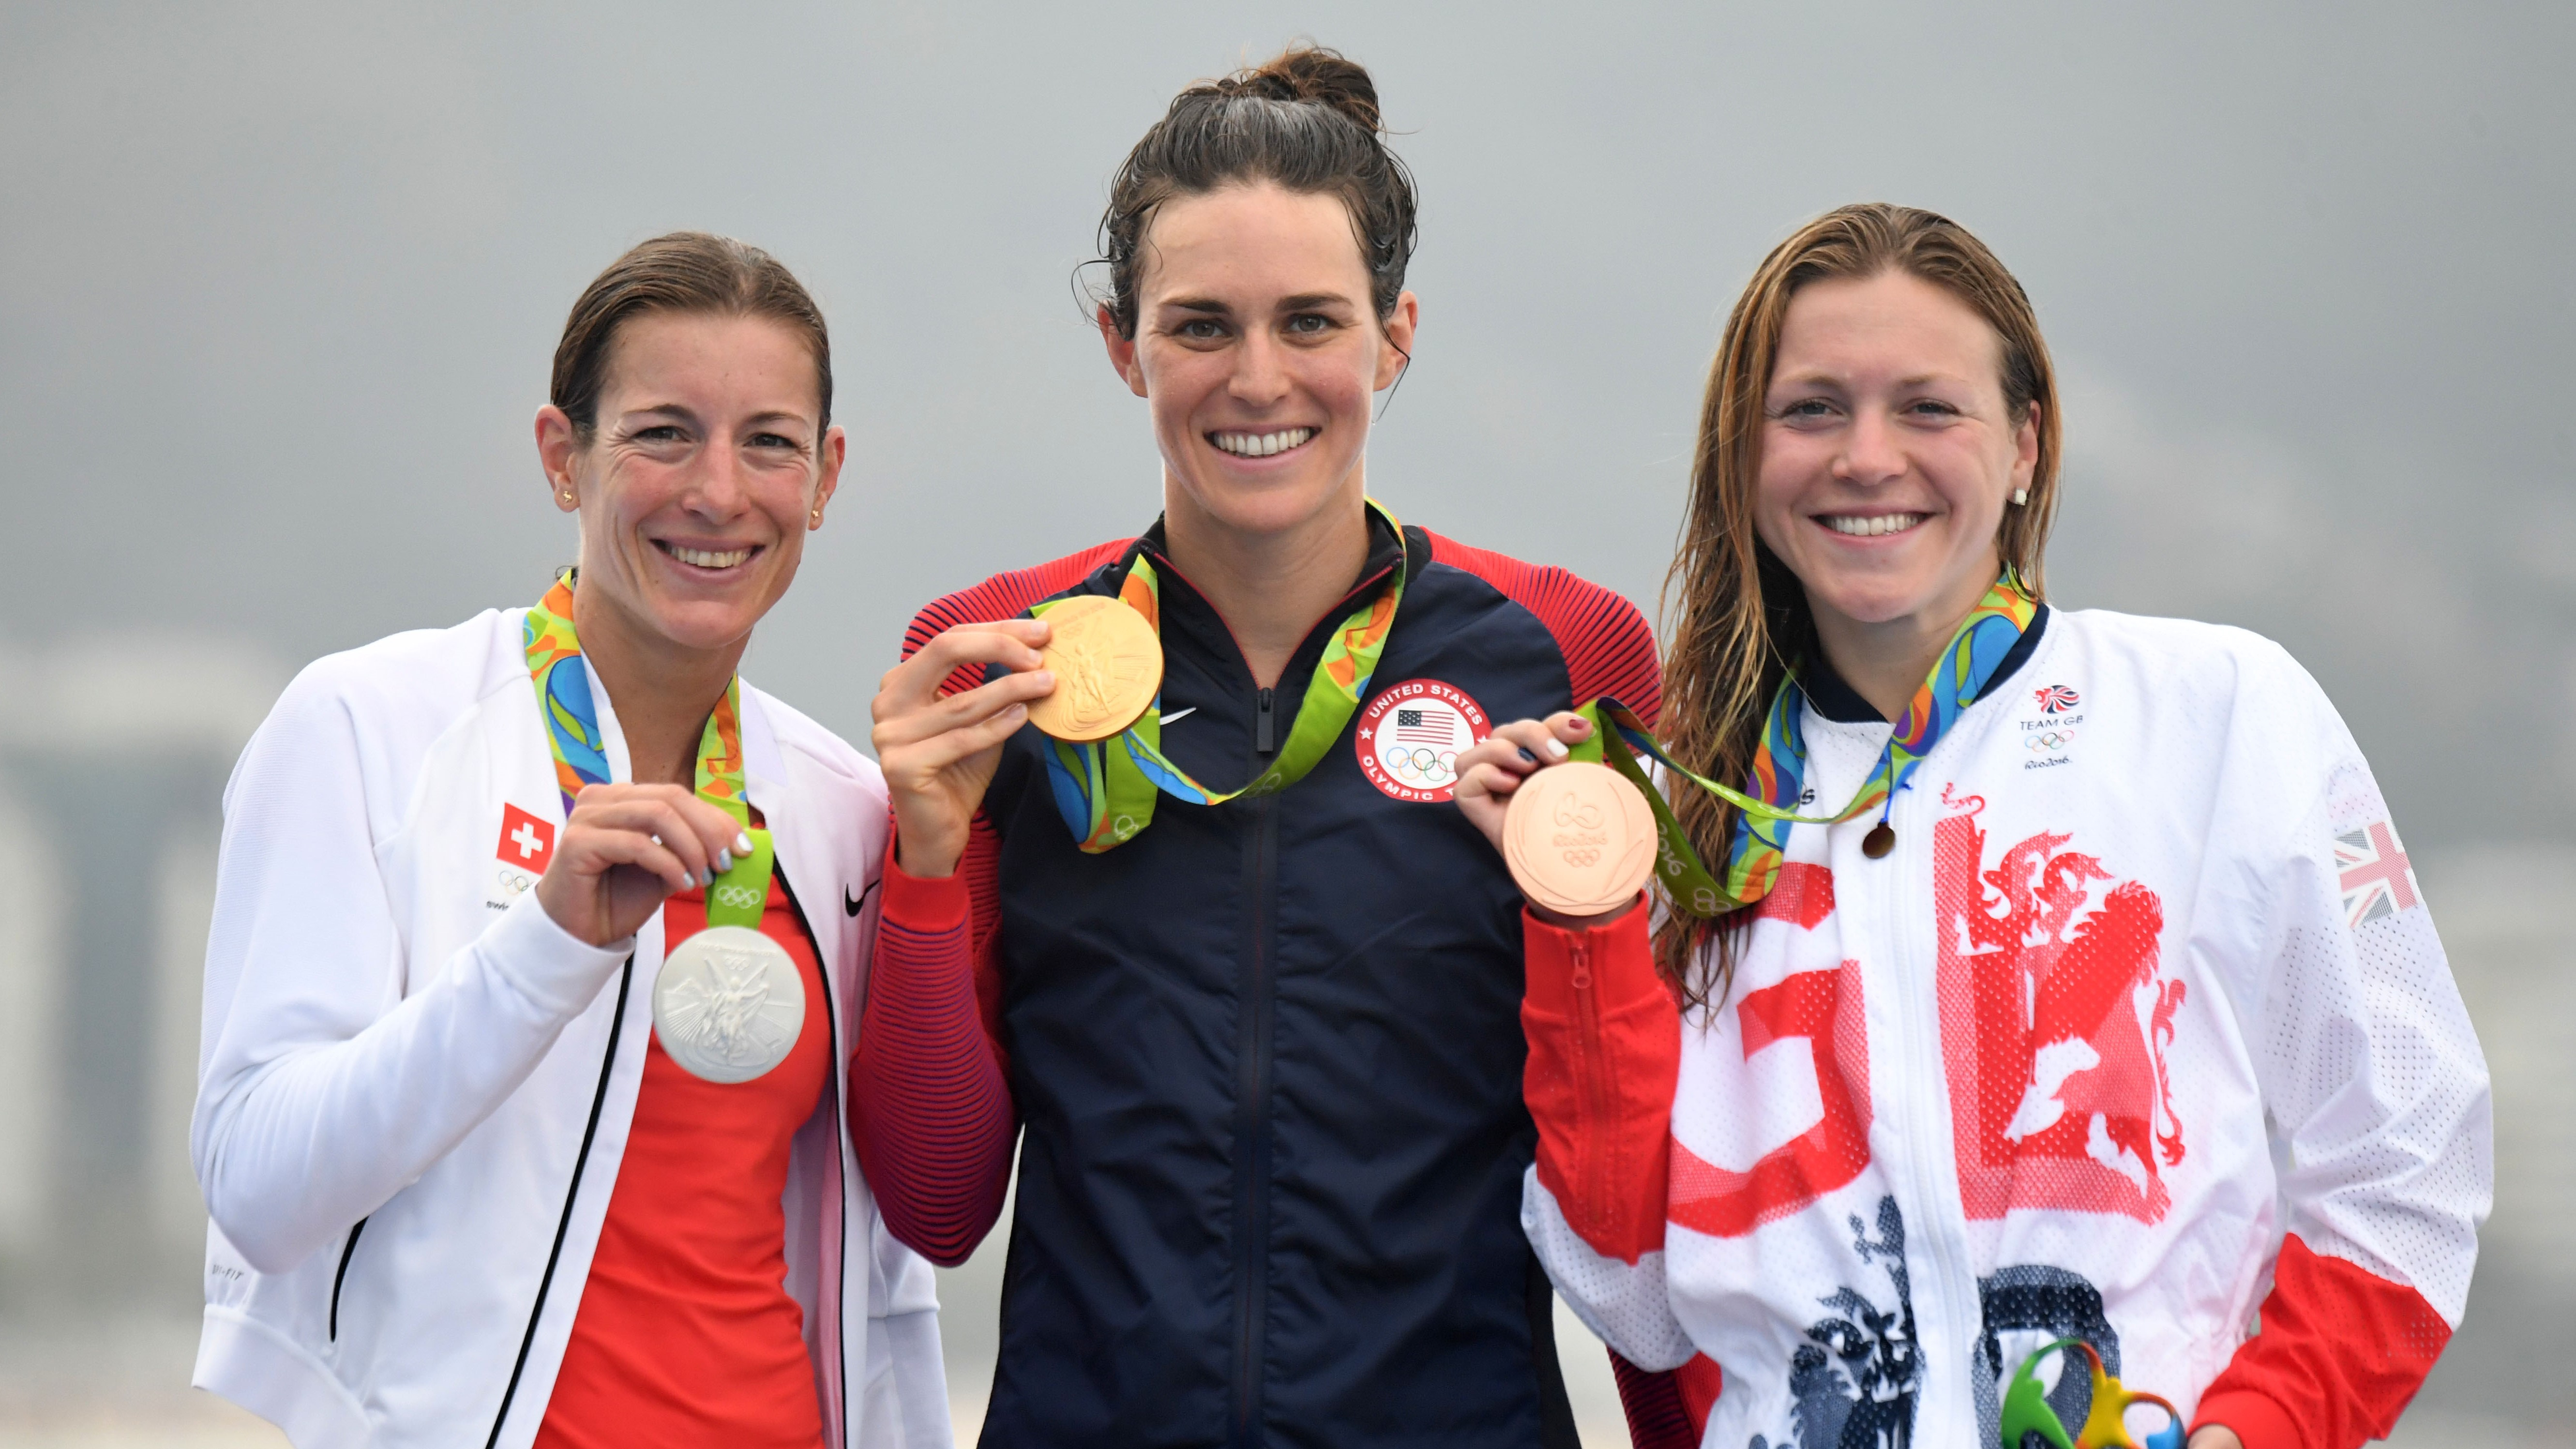 The 3 medallists at the Rio 2016 Olympics